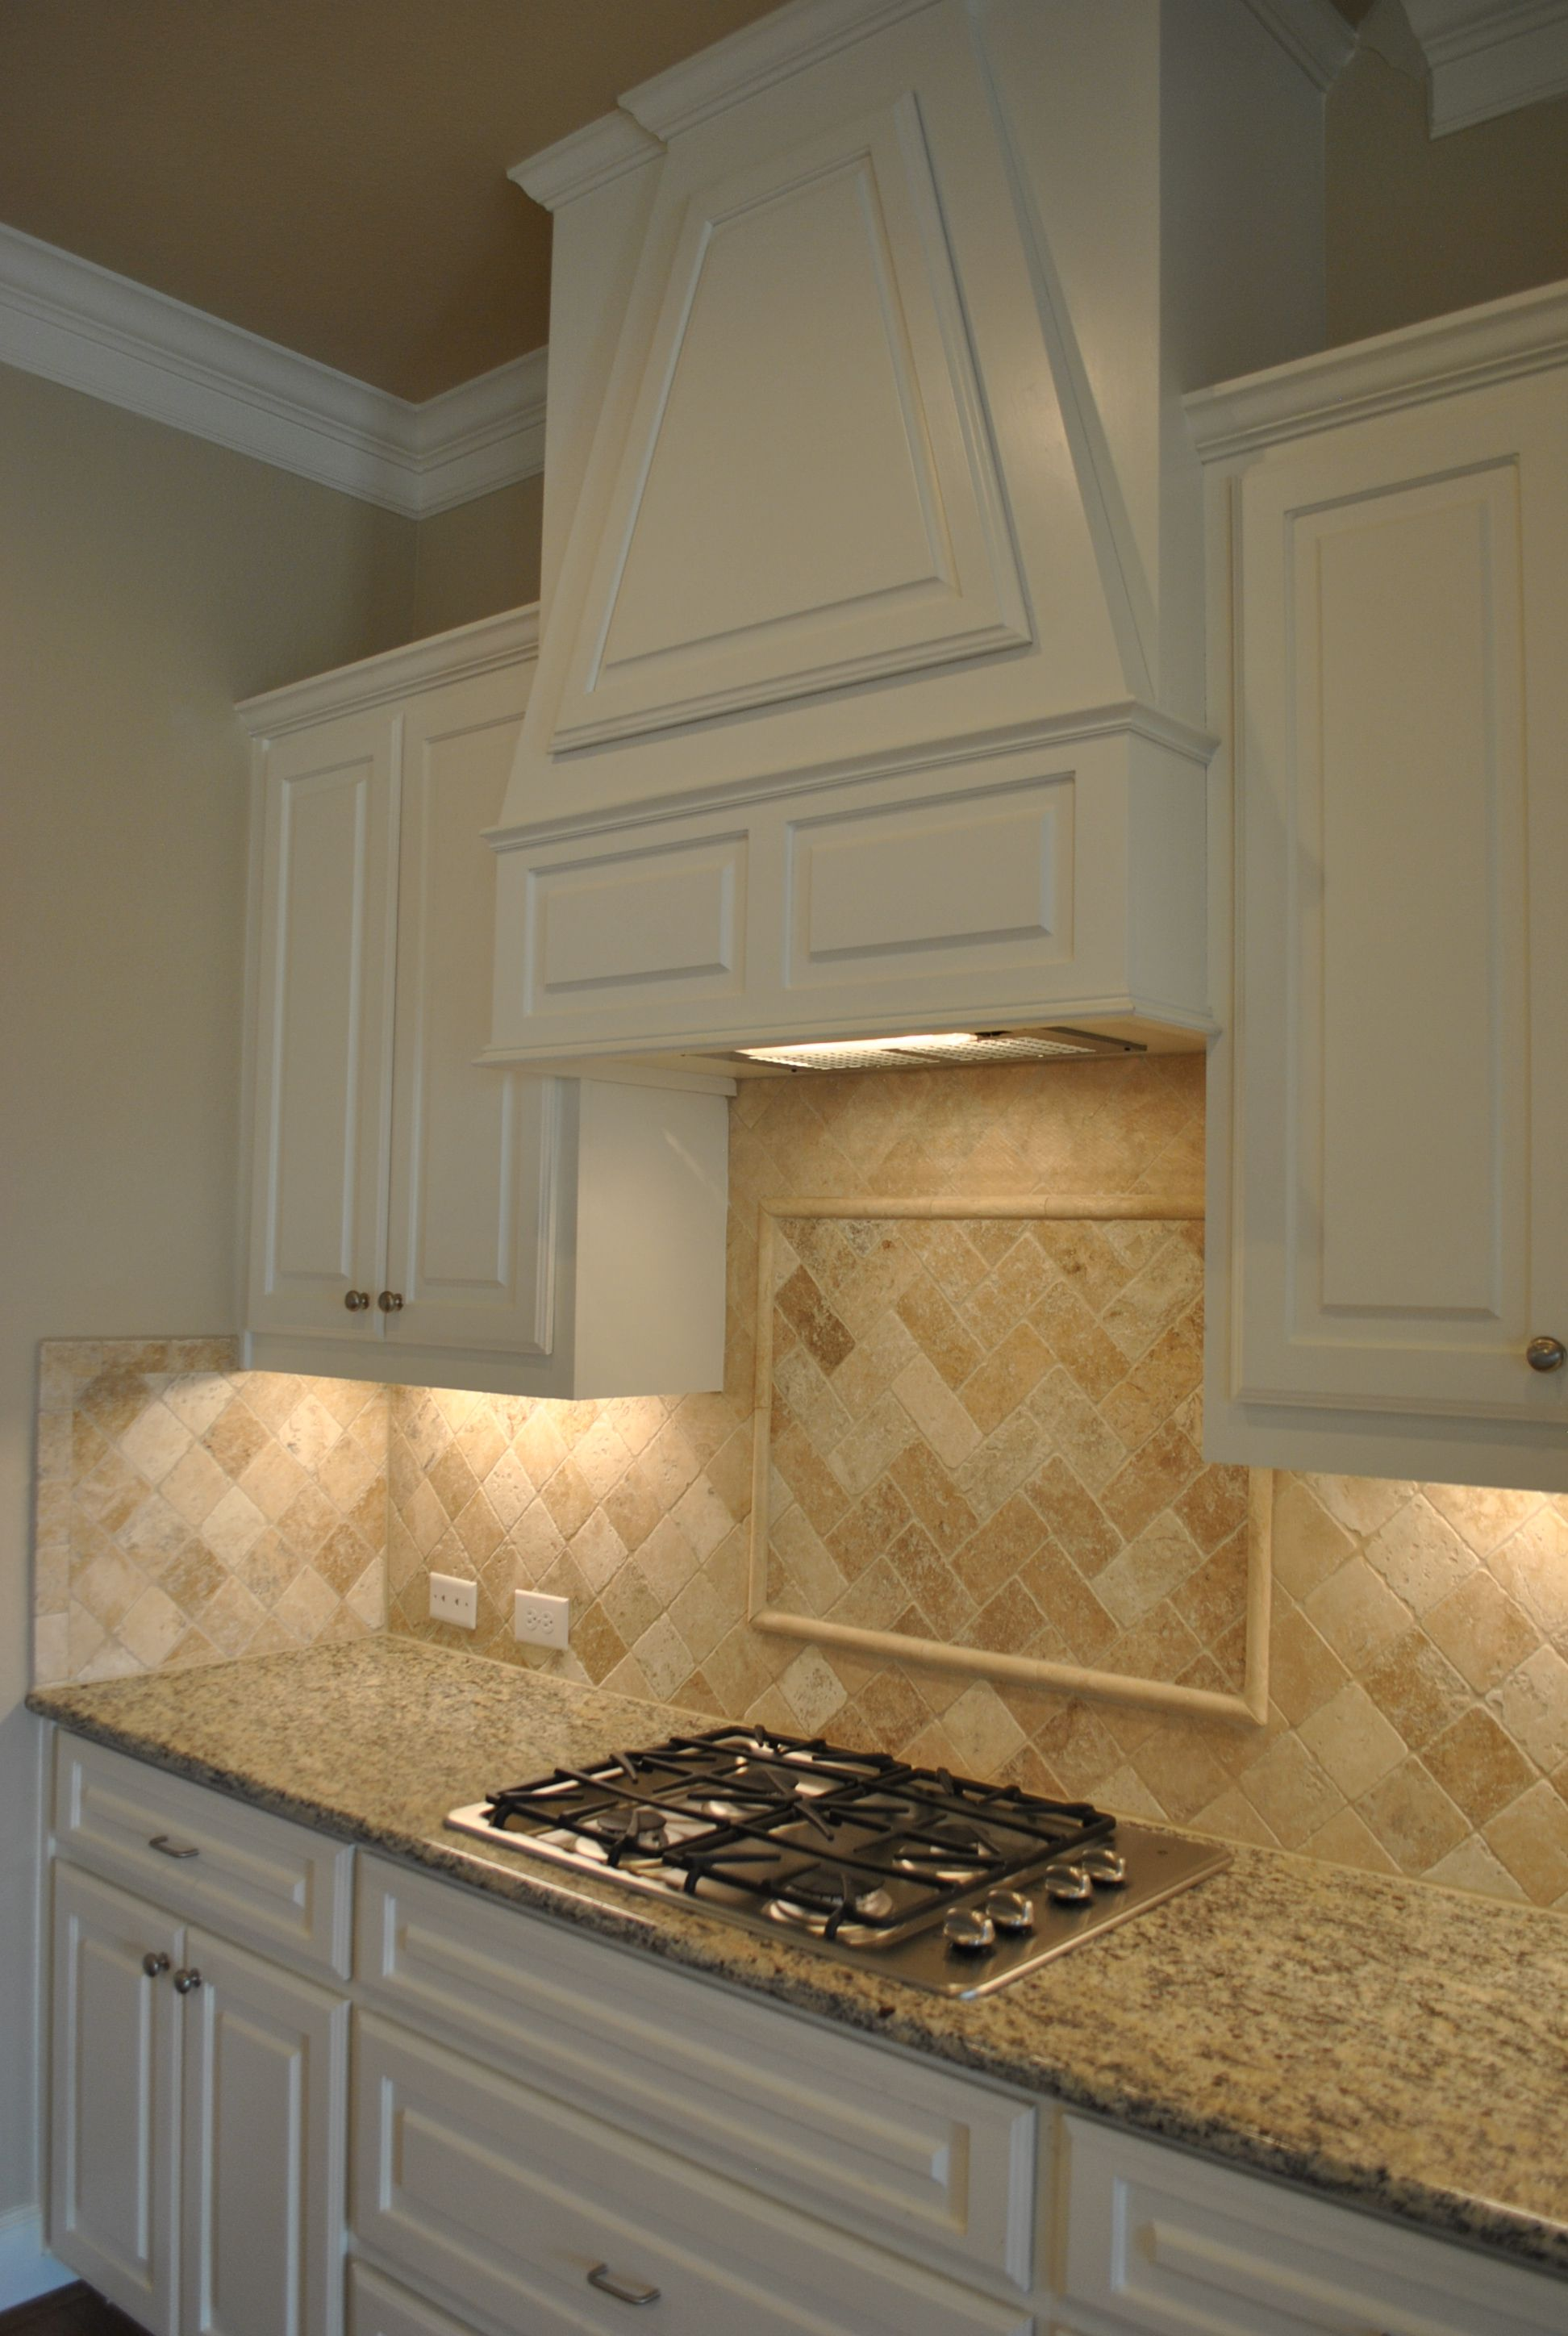 Tumbled Marble Kitchen Backsplash The Heart Of The Home 3